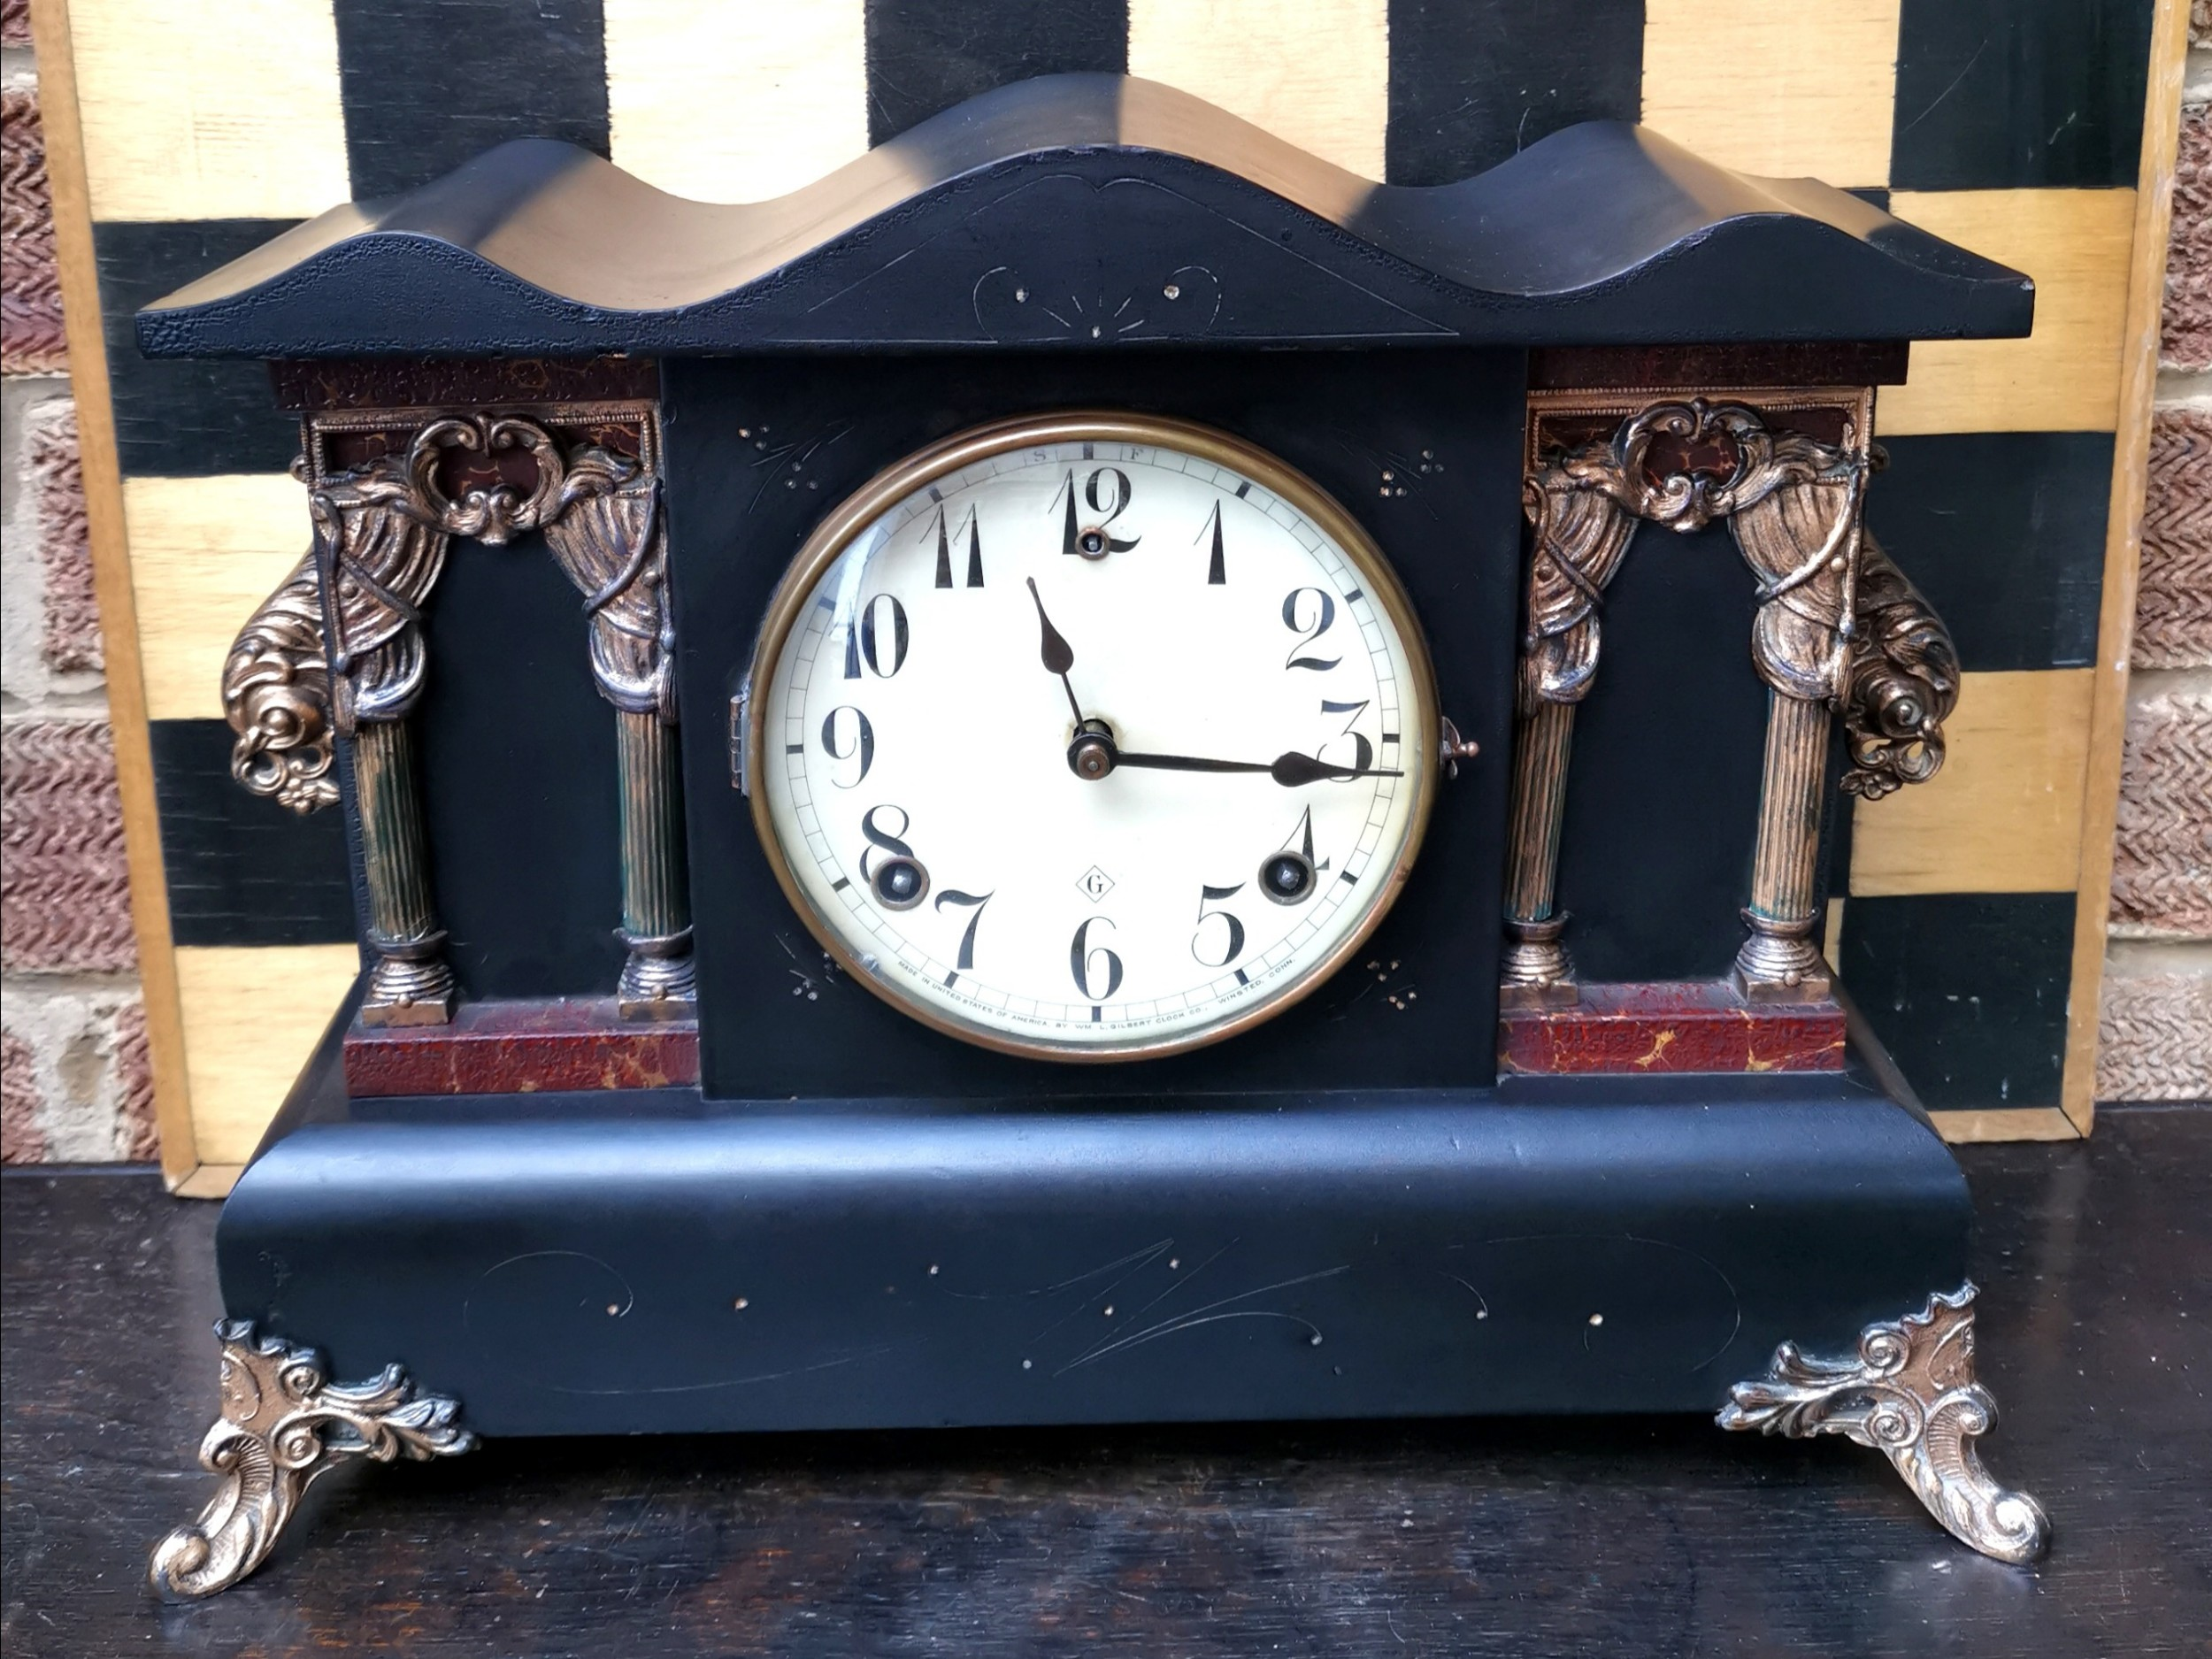 wm gilbert usa ebonised serpentine gilt coloured 8 day bell chiming and gong striking late 19thearly 20th c mantle clock